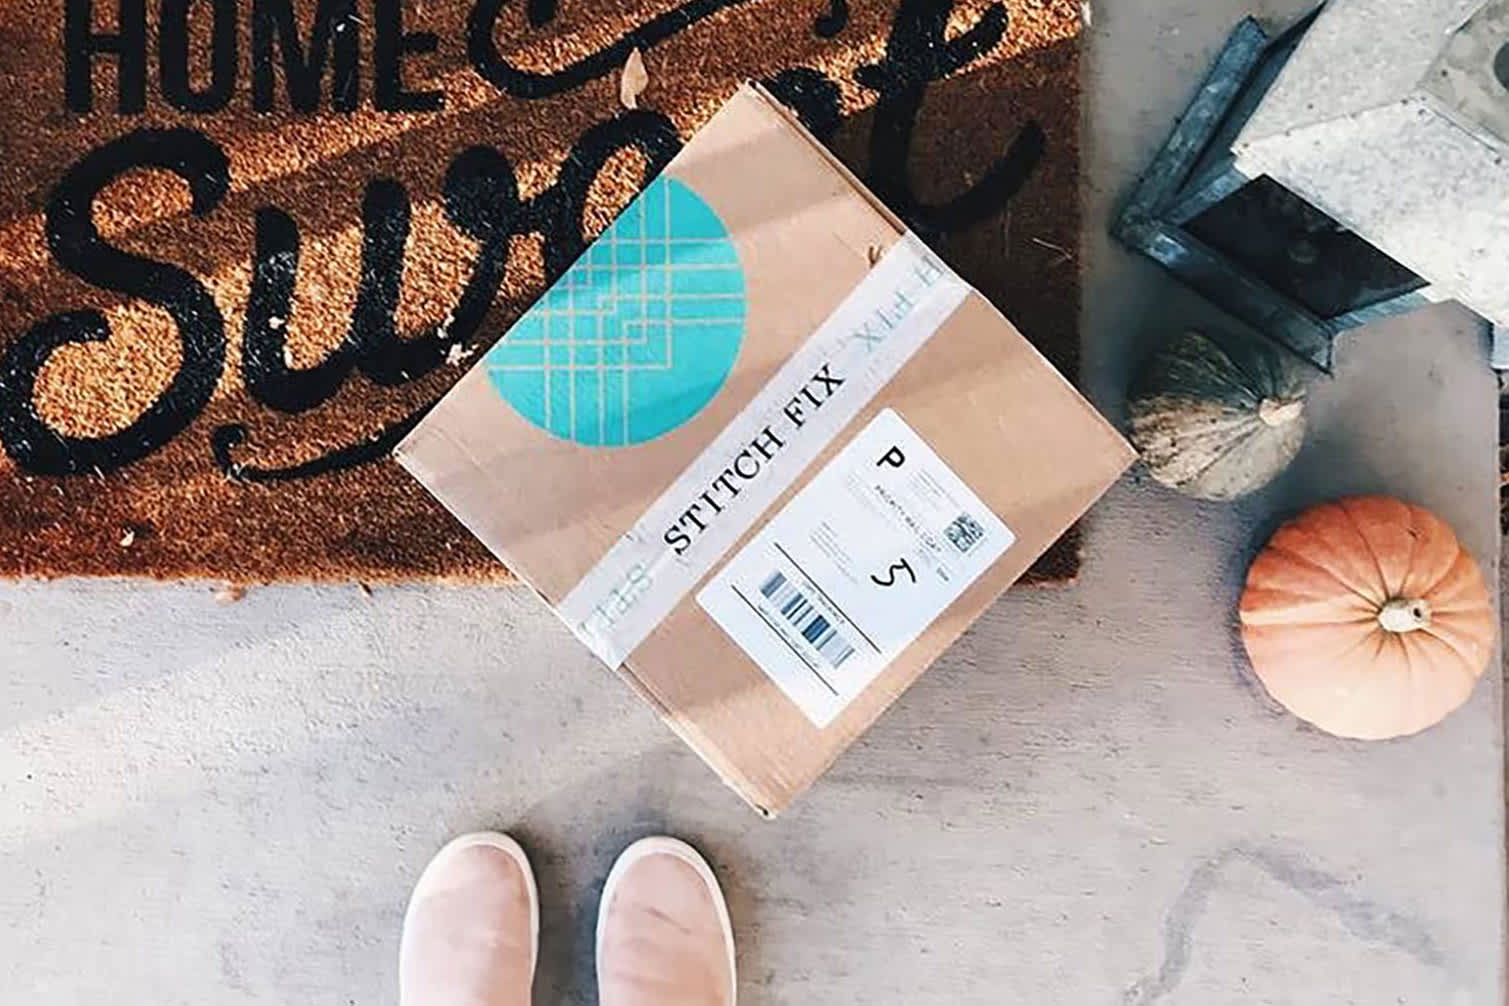 Incoming Stitch Fix CEO says the 'timing felt right' for executive tra... image